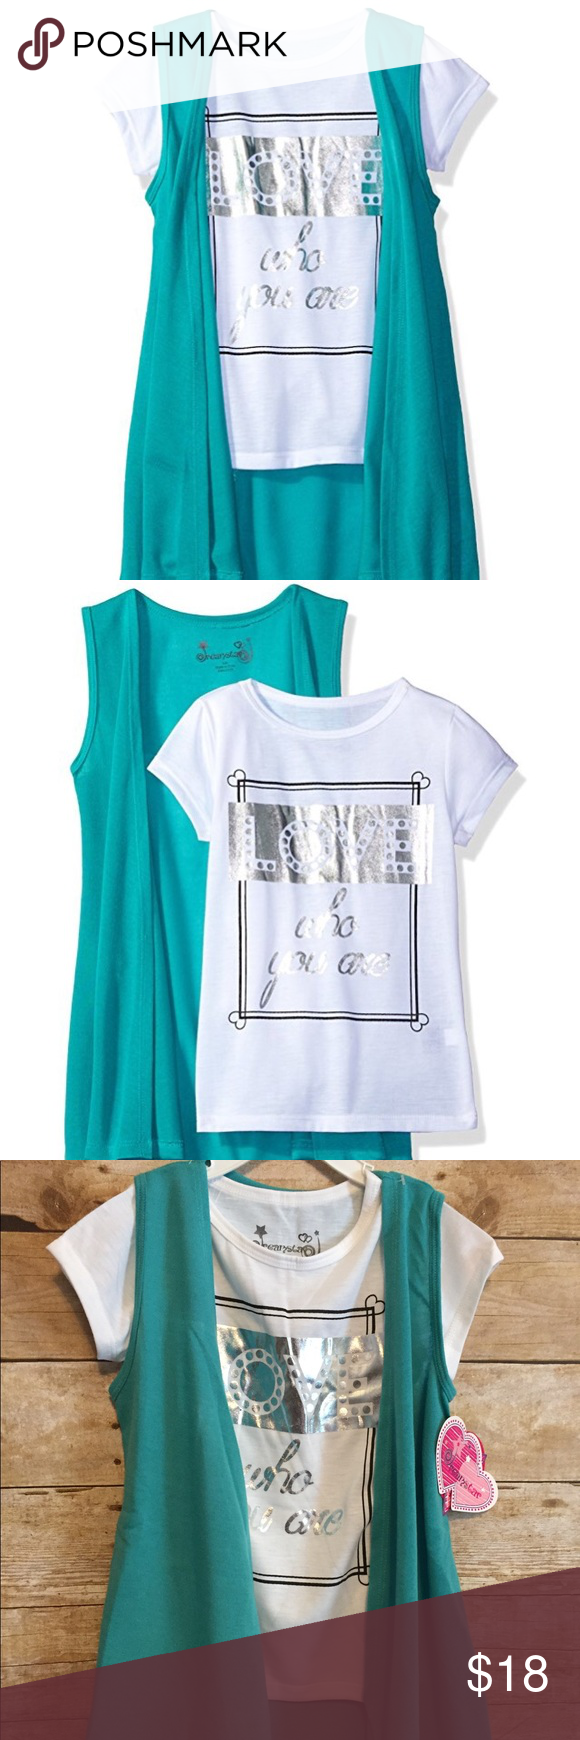 Dream Star Girls' Short Slv Screen Top/Duster Vest 2 Piece Set, Teal/ White Short Sleeve, FoilScreen Print on Tee. Size 4.         Brand:  Dream Star                                         100% Polyester.                                               Machine Washable Dream Star Shirts & Tops